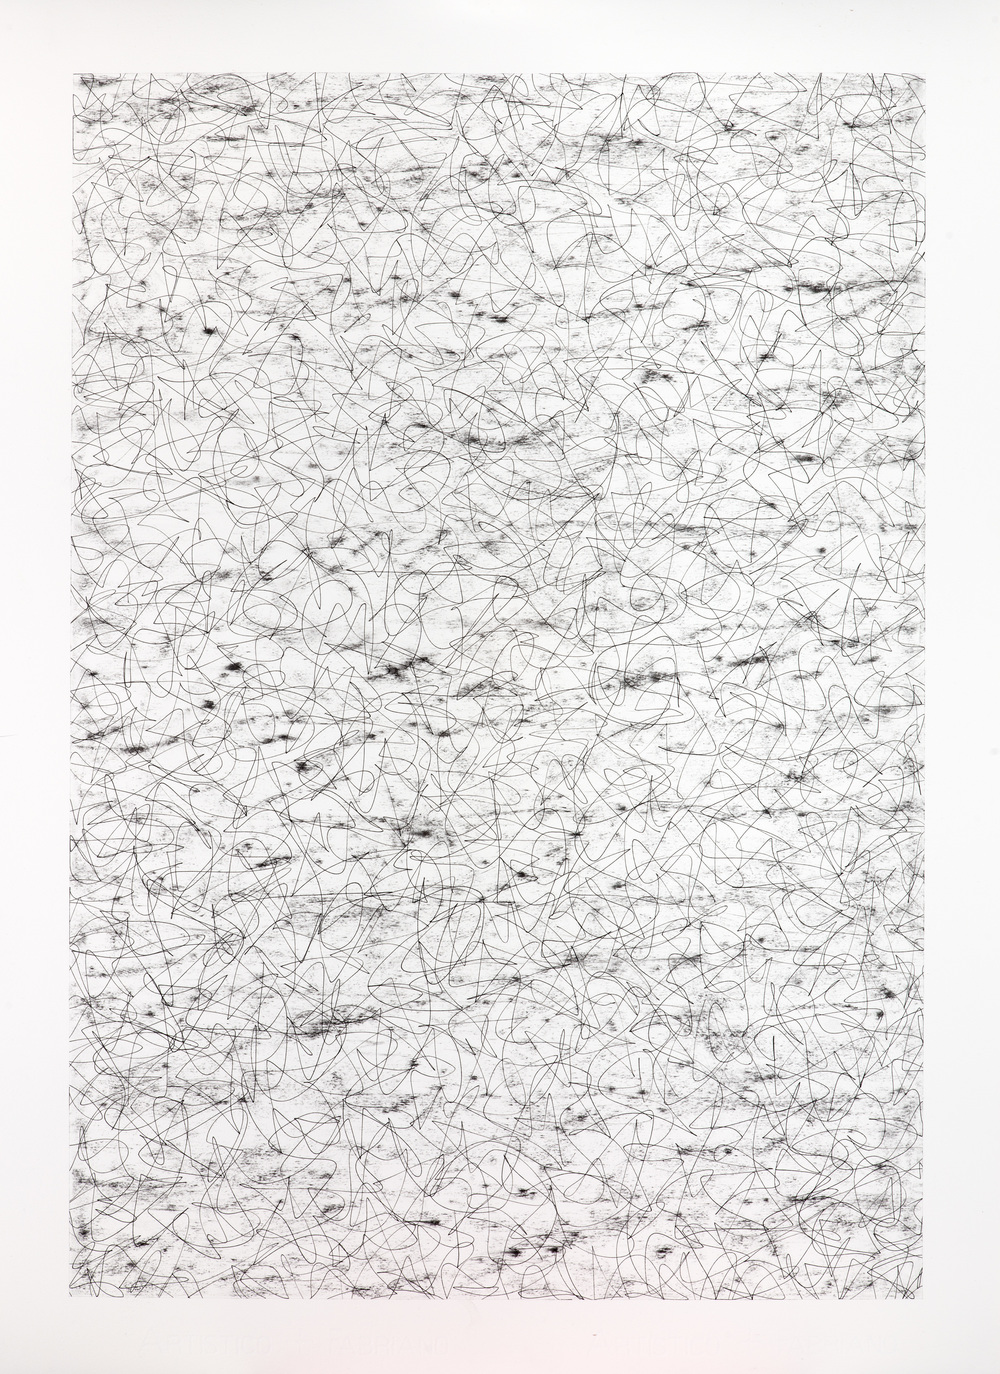 Untitled,  2013 / Charcoal and pen on paper / 76cm x 56cm